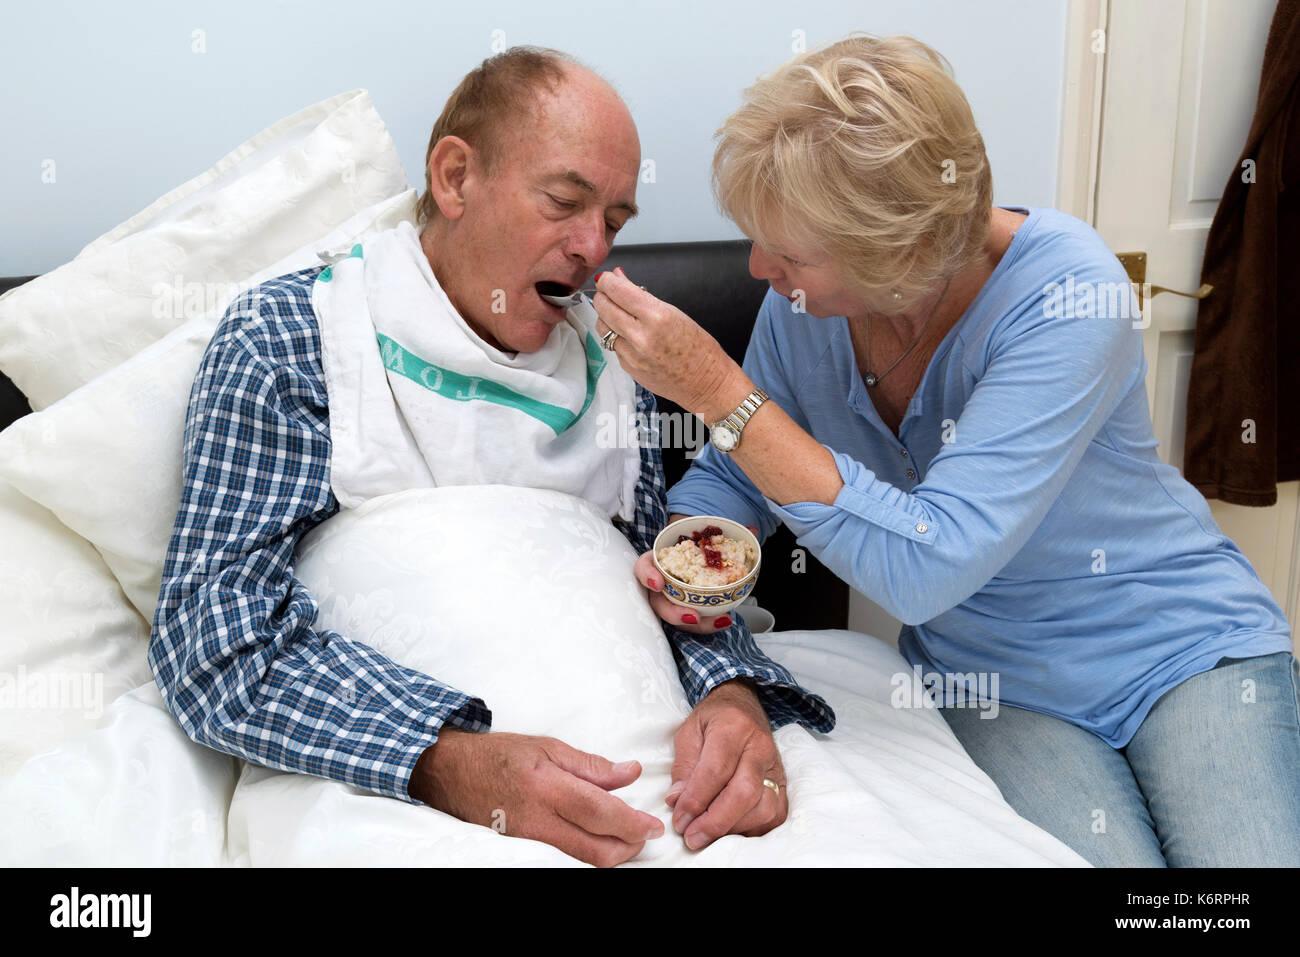 Home Care And Livein For Sick And Elderly In Uk